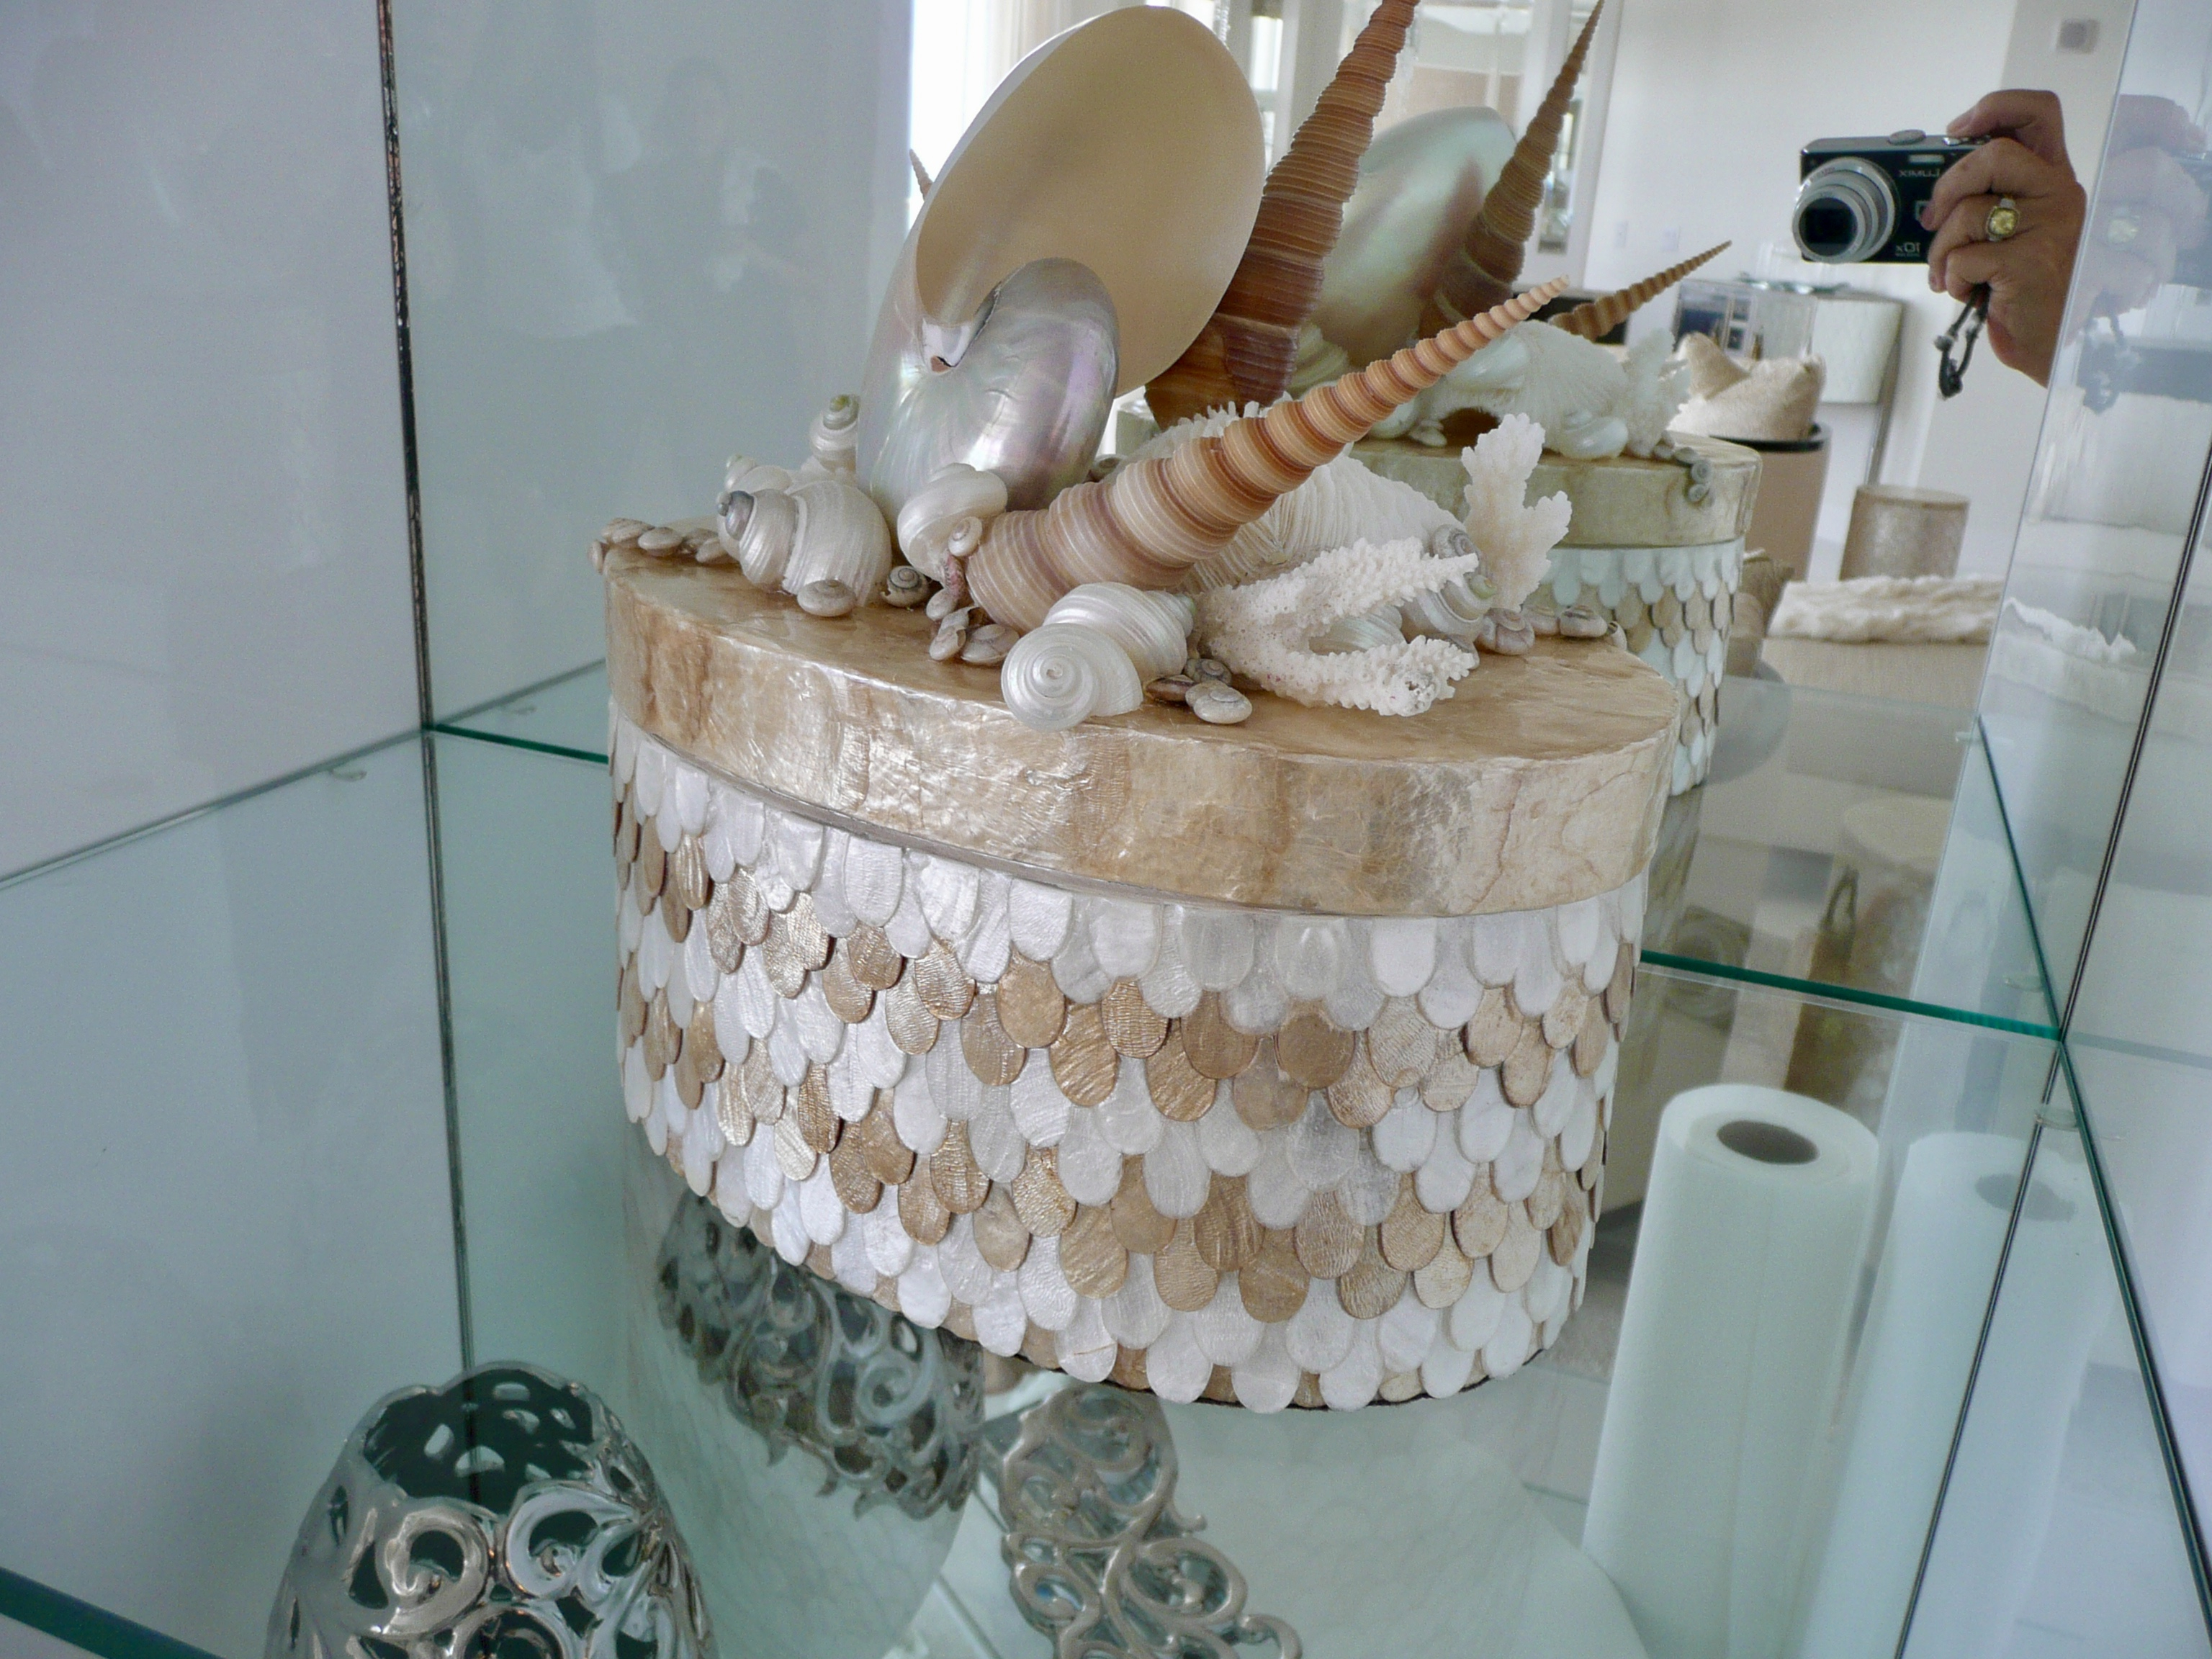 An oval box made with white and tan mother of pearl shells sits on a glass table.